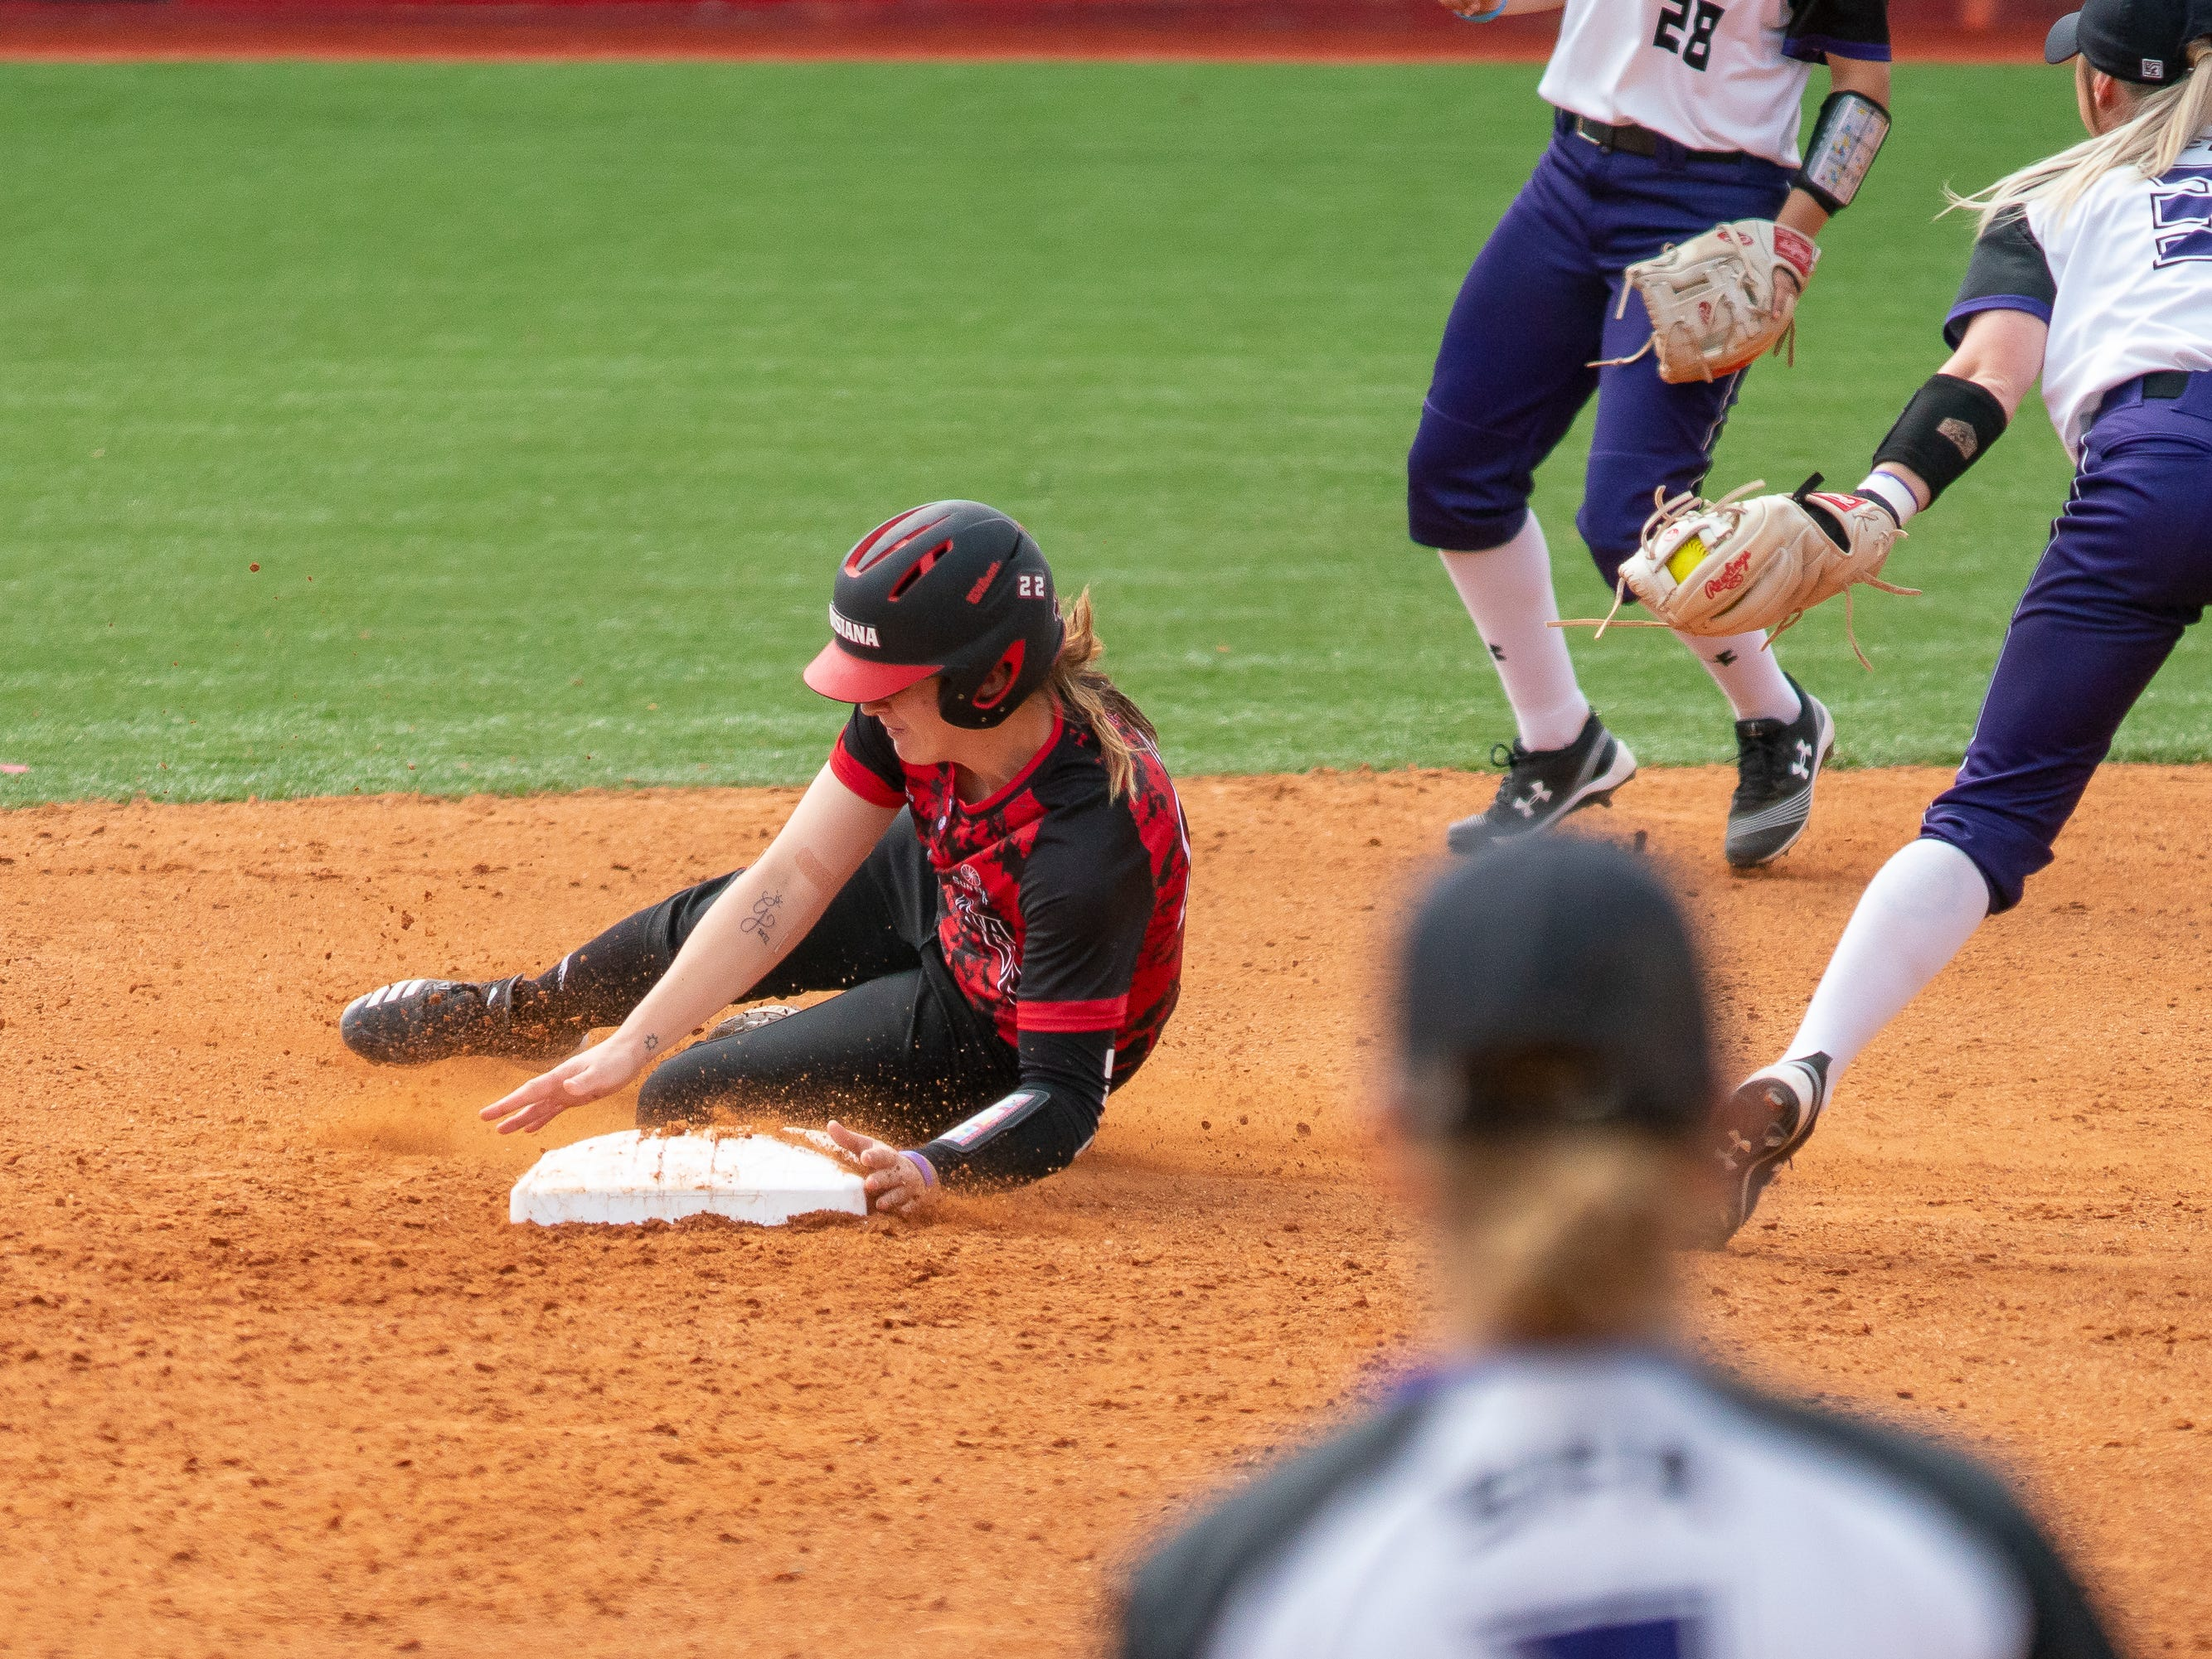 UL's Alissa Dalton gets tagged while stealing second base as the Ragin' Cajuns take on Stephen F. Austin at Lamson Park on Saturday, Feb. 16, 2019.